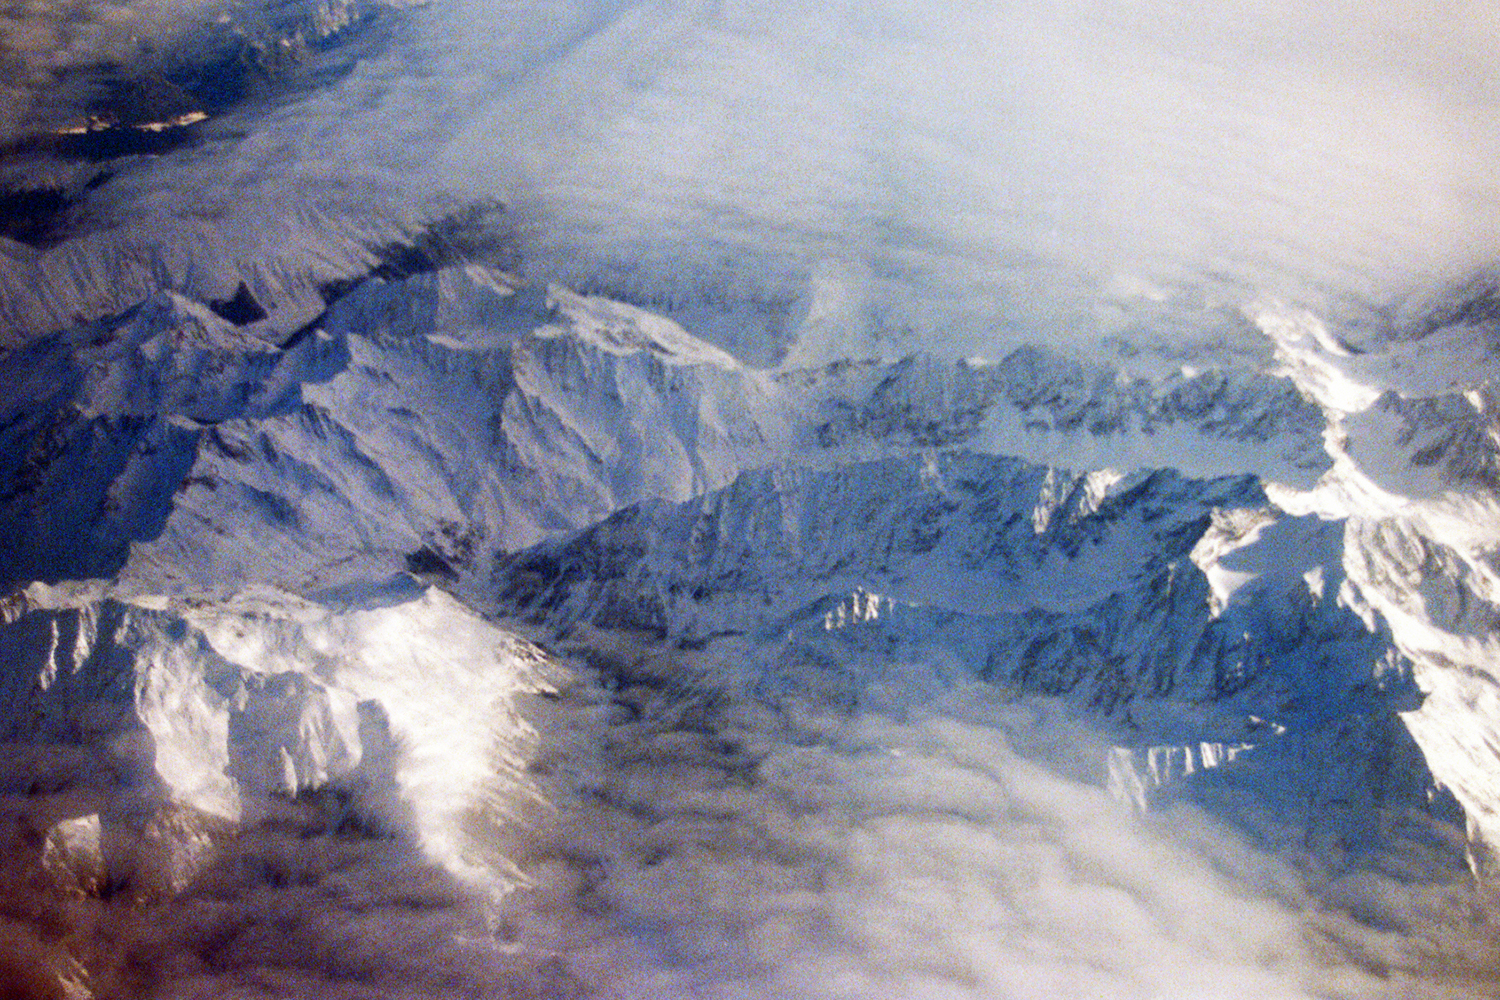 Alps from a plane window